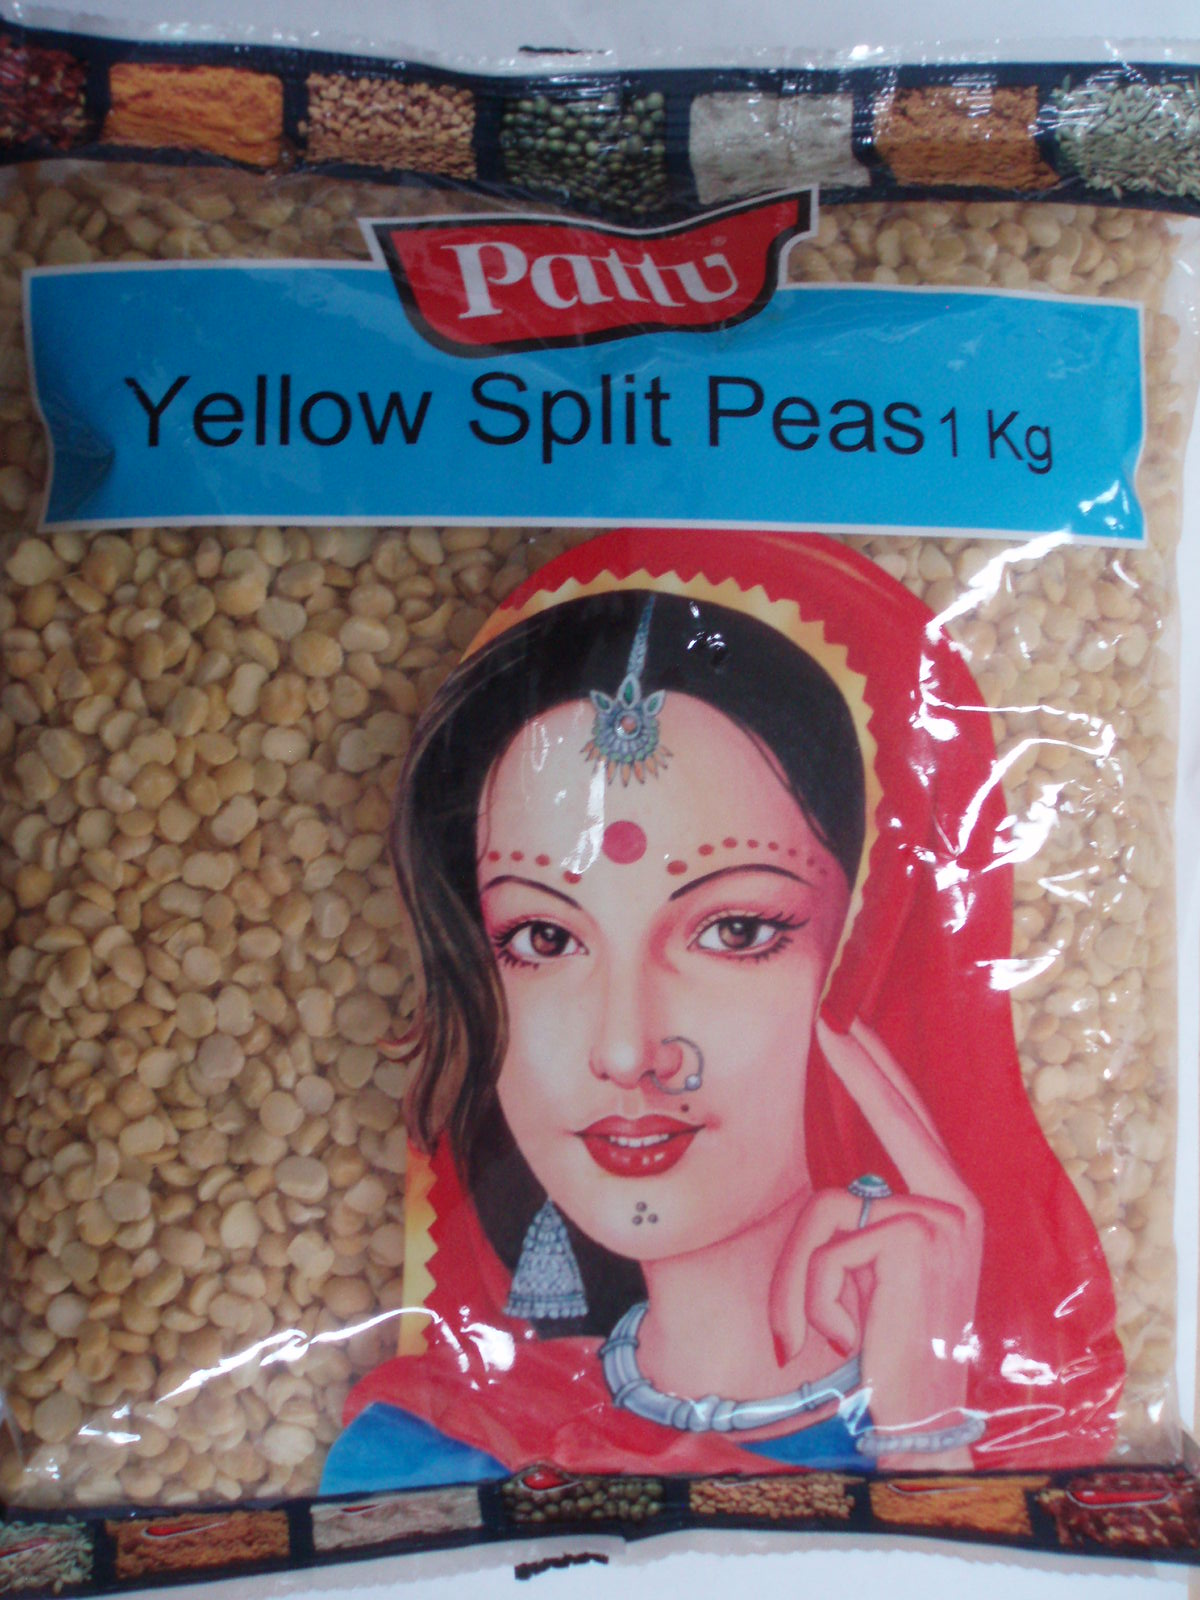 Yellow Split Peas-Pattu-1 Kg